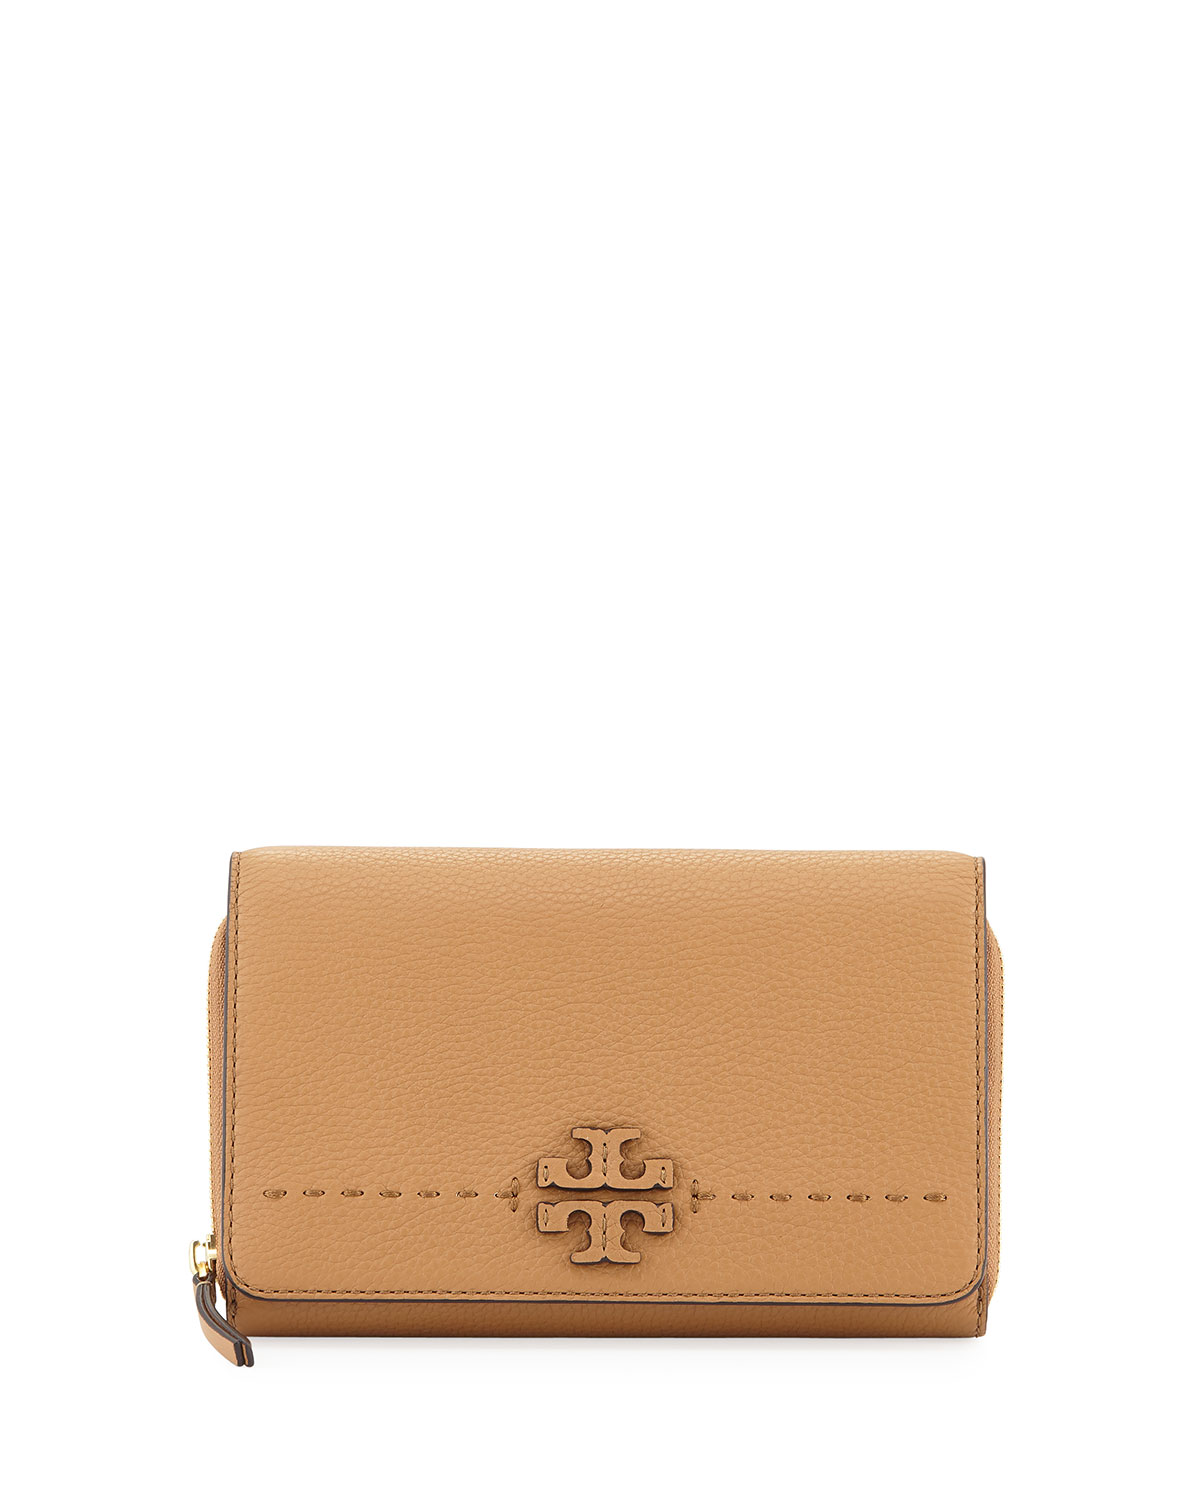 79a7fe1adc65 Tory Burch McGraw Flat Crossbody Wallet Bag